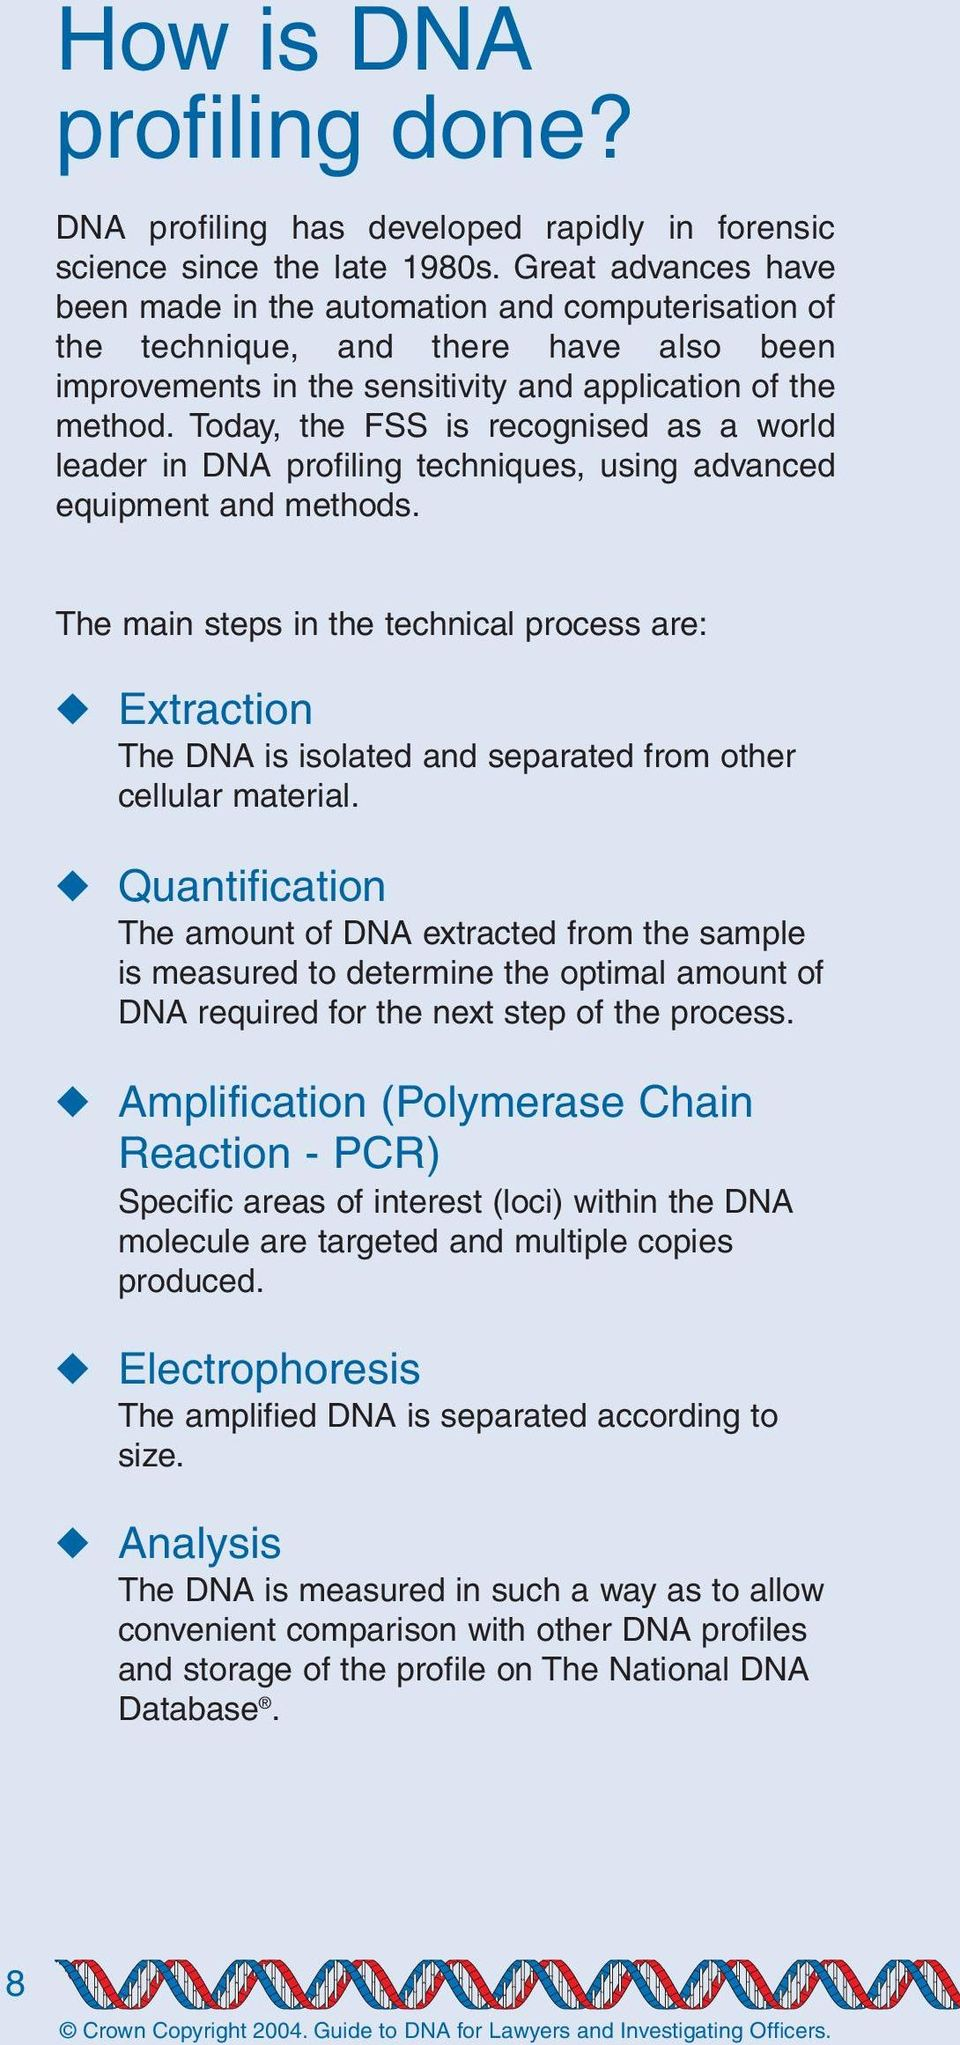 Today, the FSS is recognised as a world leader in DNA profiling techniques, using advanced equipment and methods.